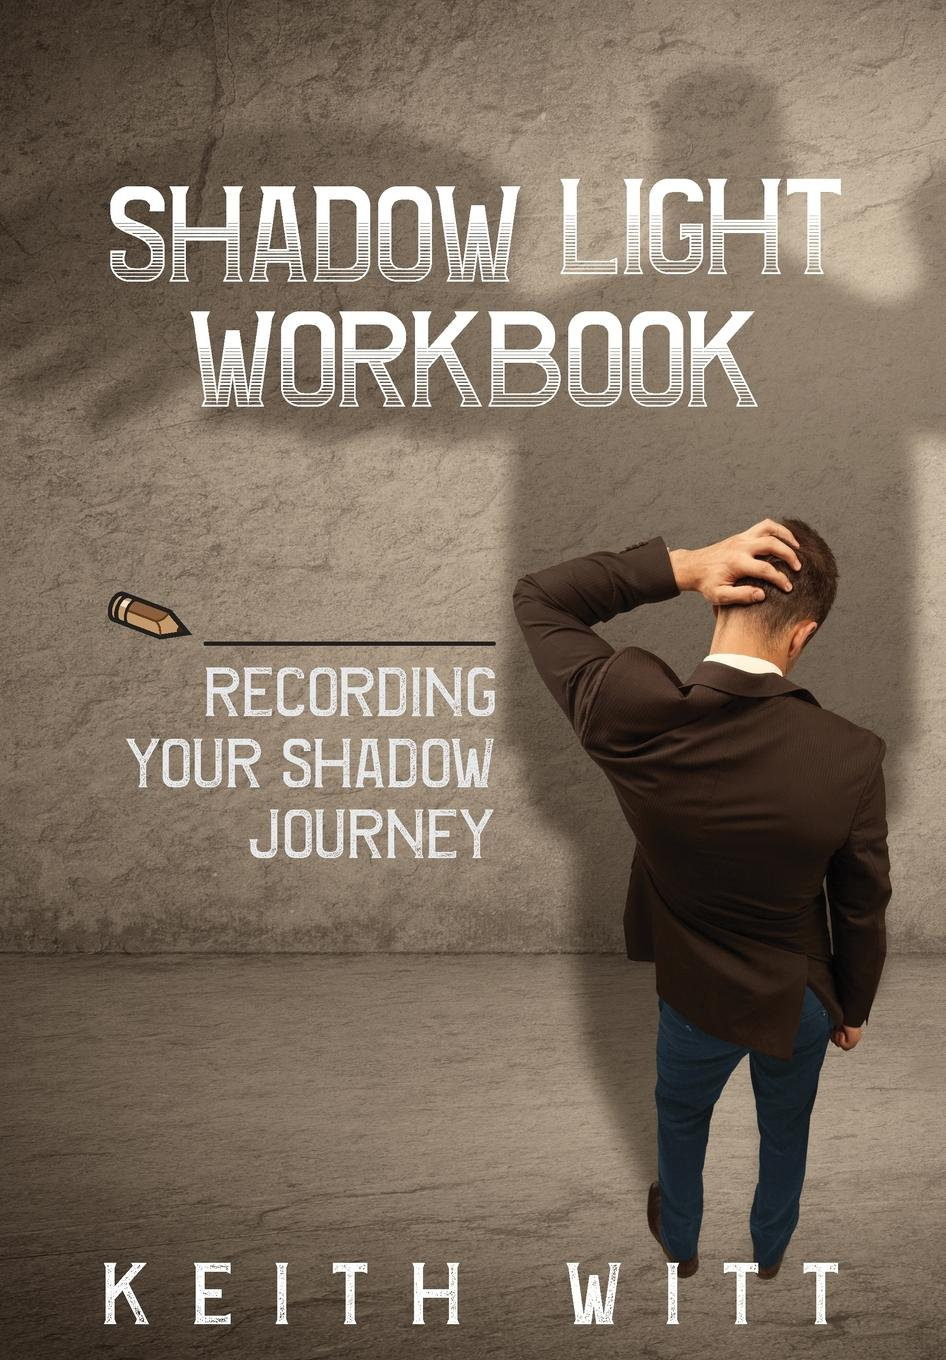 Keith Witt Shadow Light Workbook. Recording Your Journey